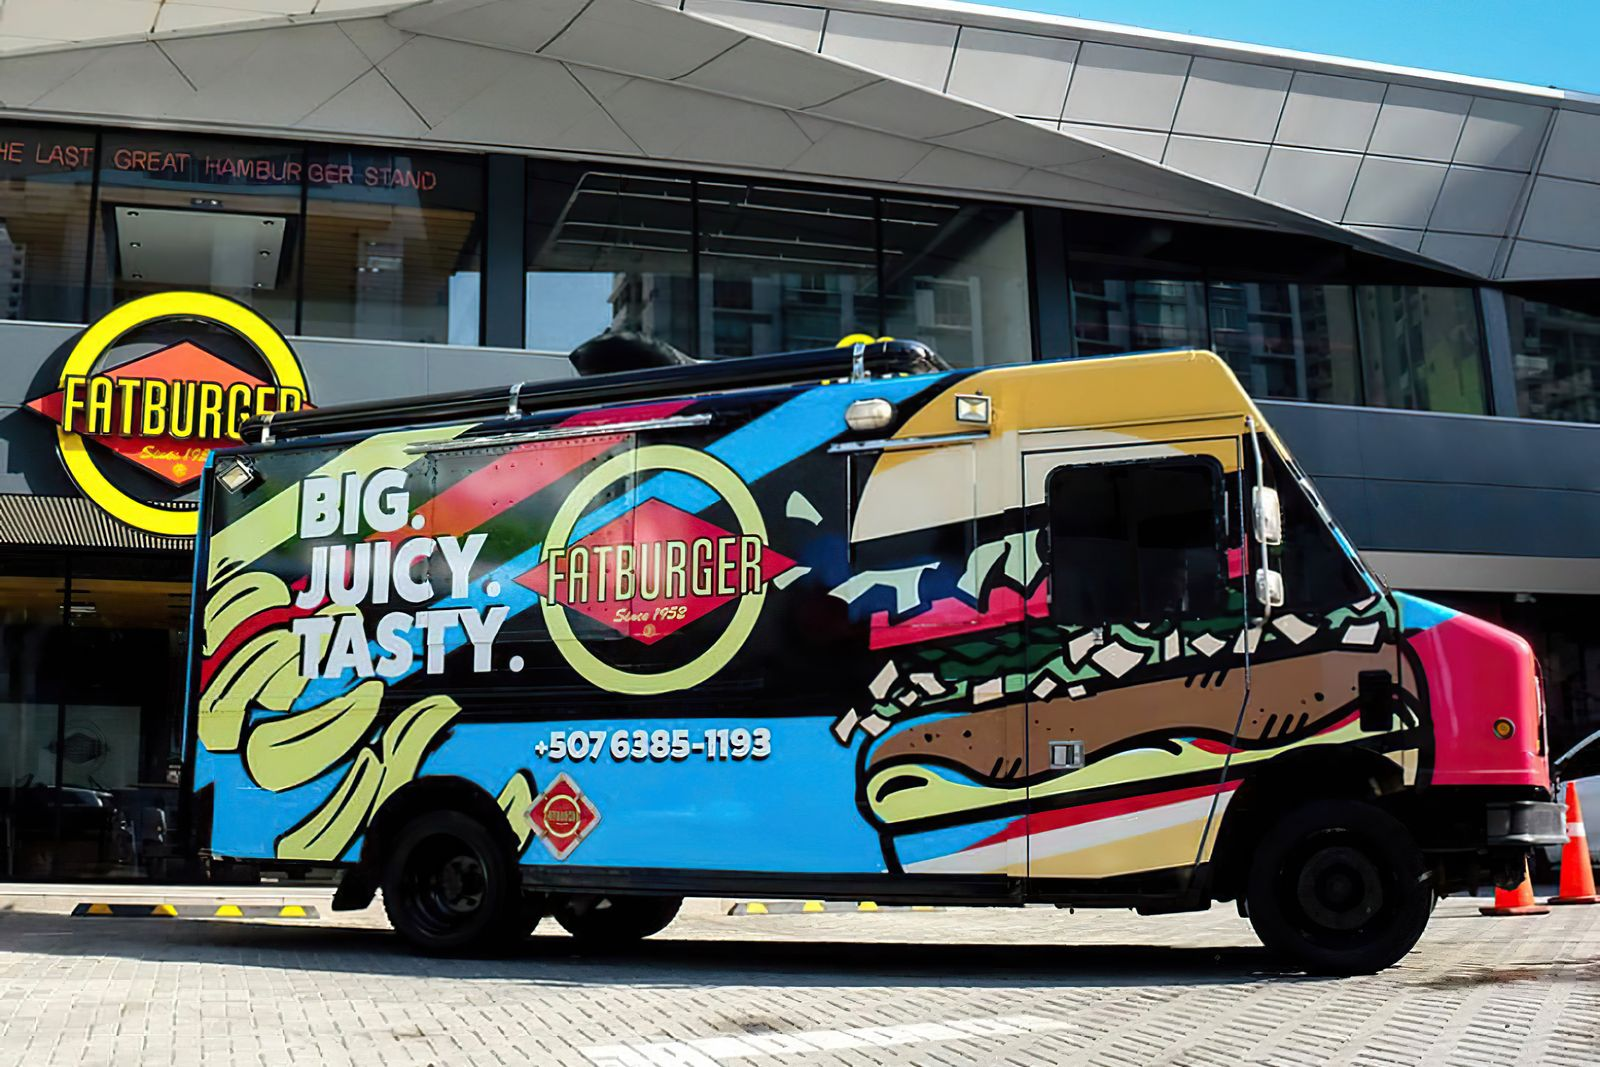 Fatburger Food Truck Provides 10,000 Free Meals for Healthcare Heroes in April